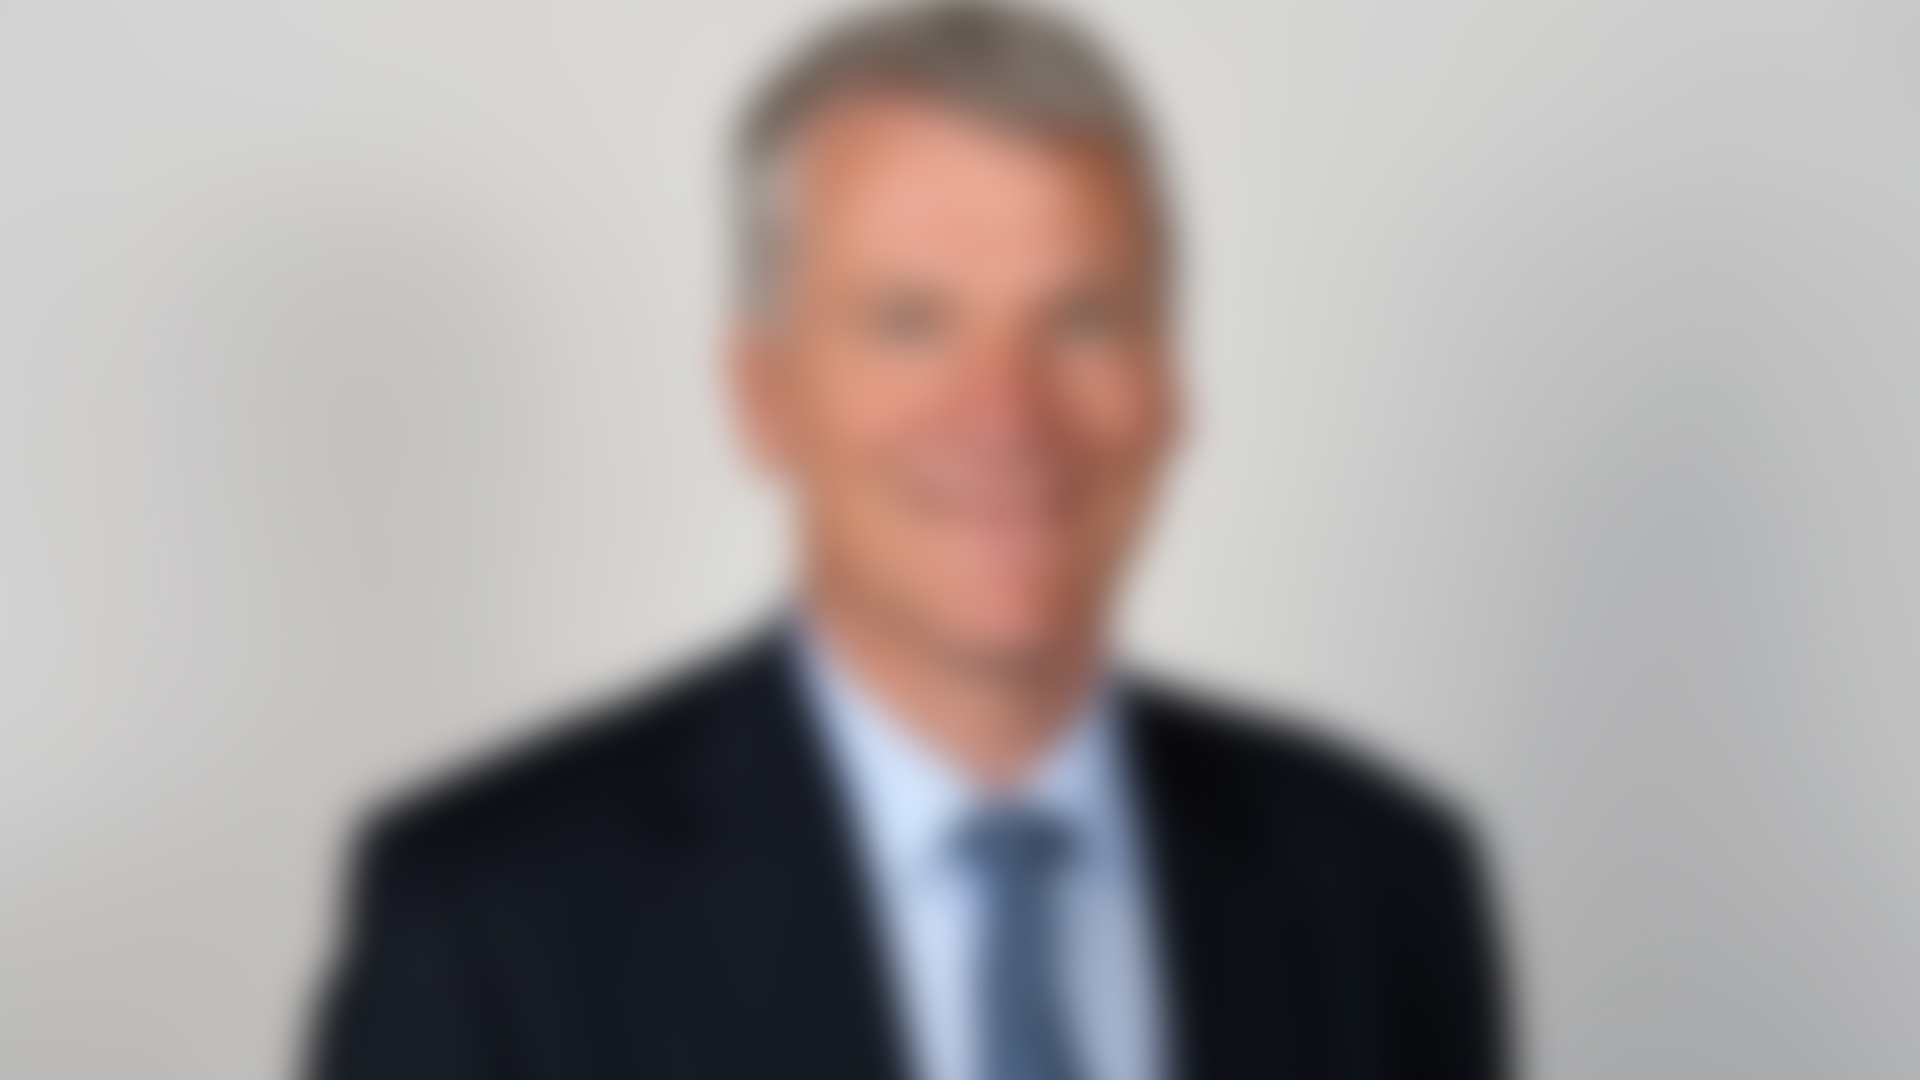 UK Vice-President of Fifa, David Gill, to be inducted into the City of Champions Hall of Fame